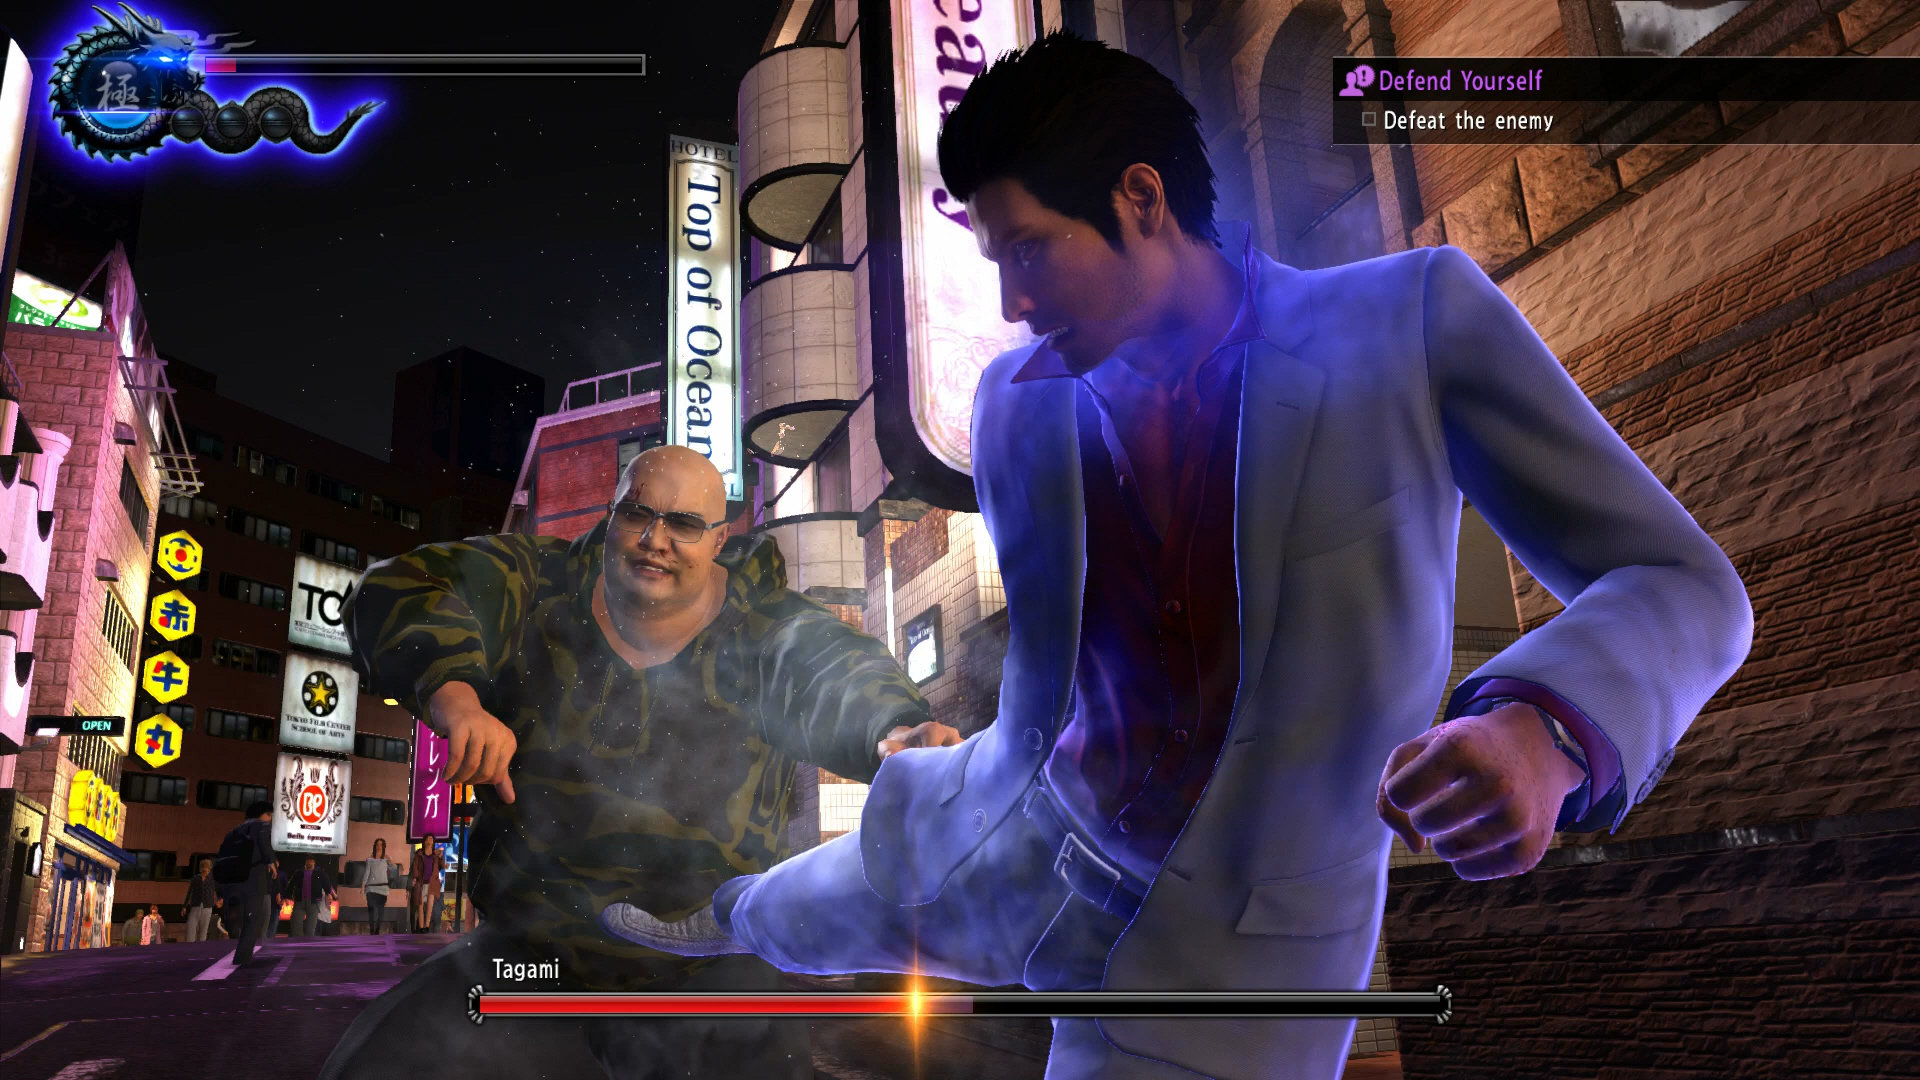 yakuza-6-the-song-of-life-screen-06-ps4-